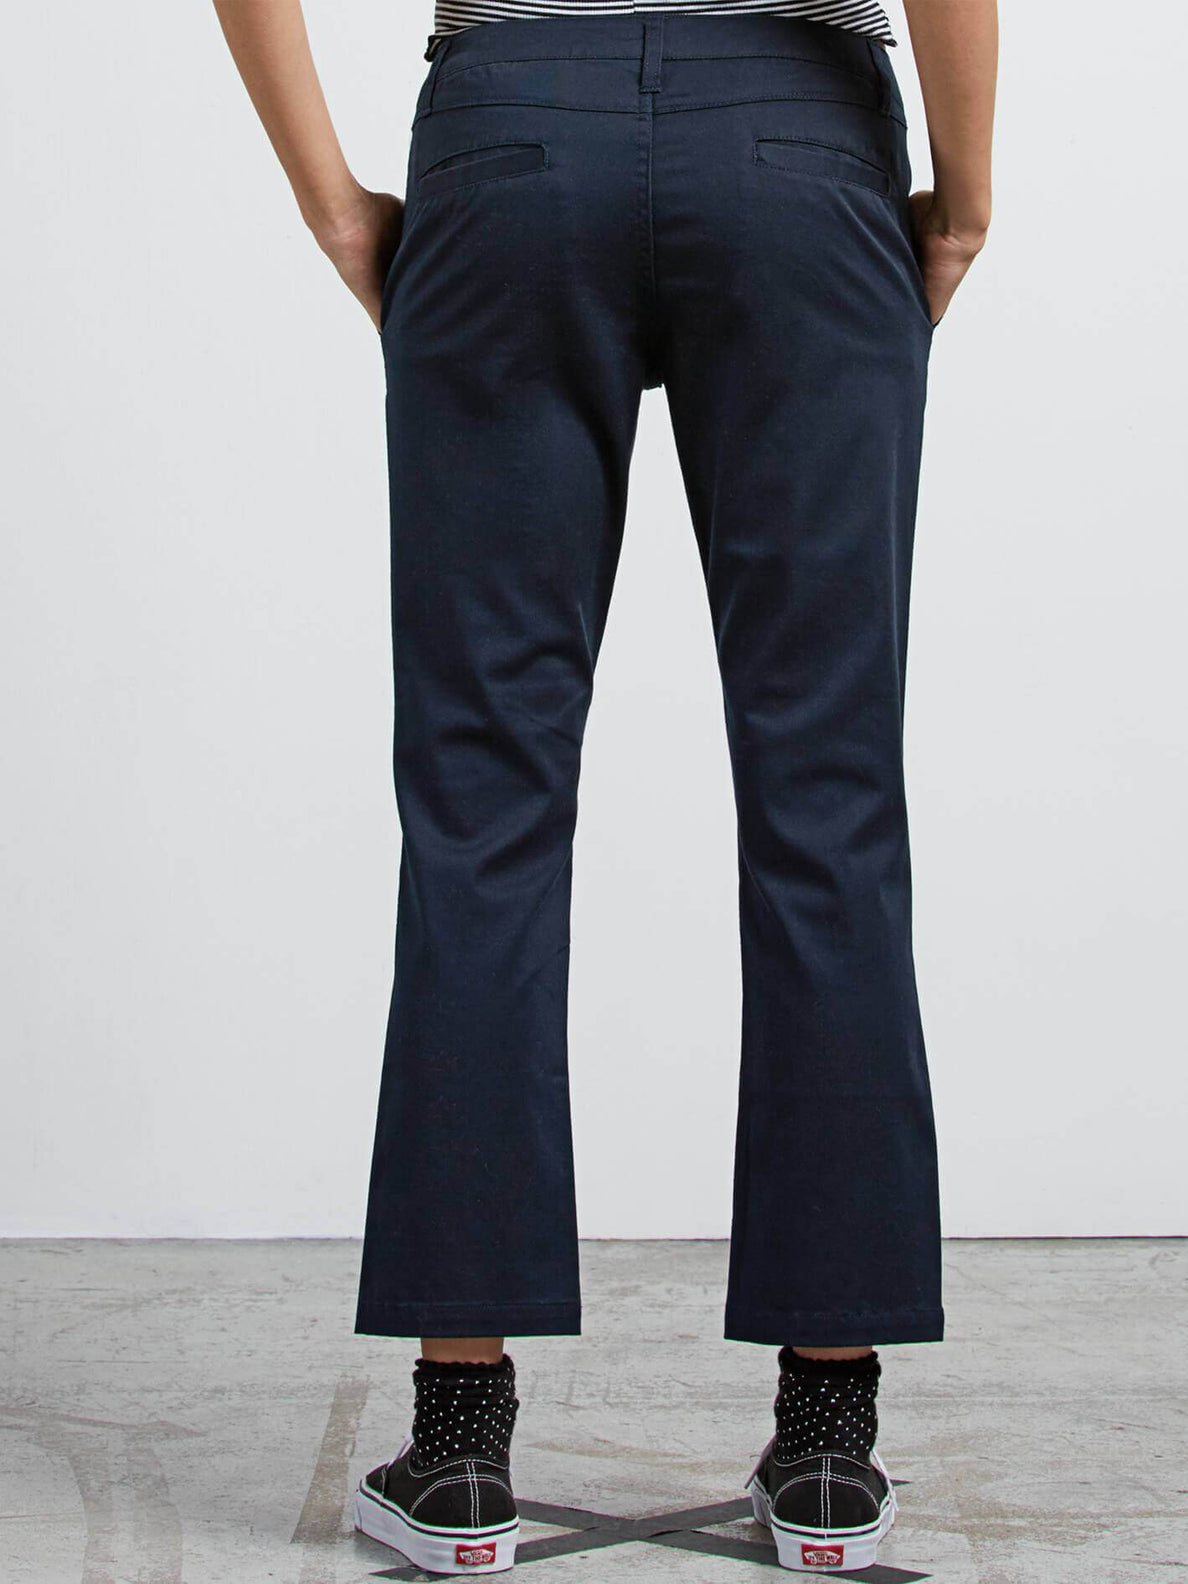 Frochickie Pants In Navy, Back View